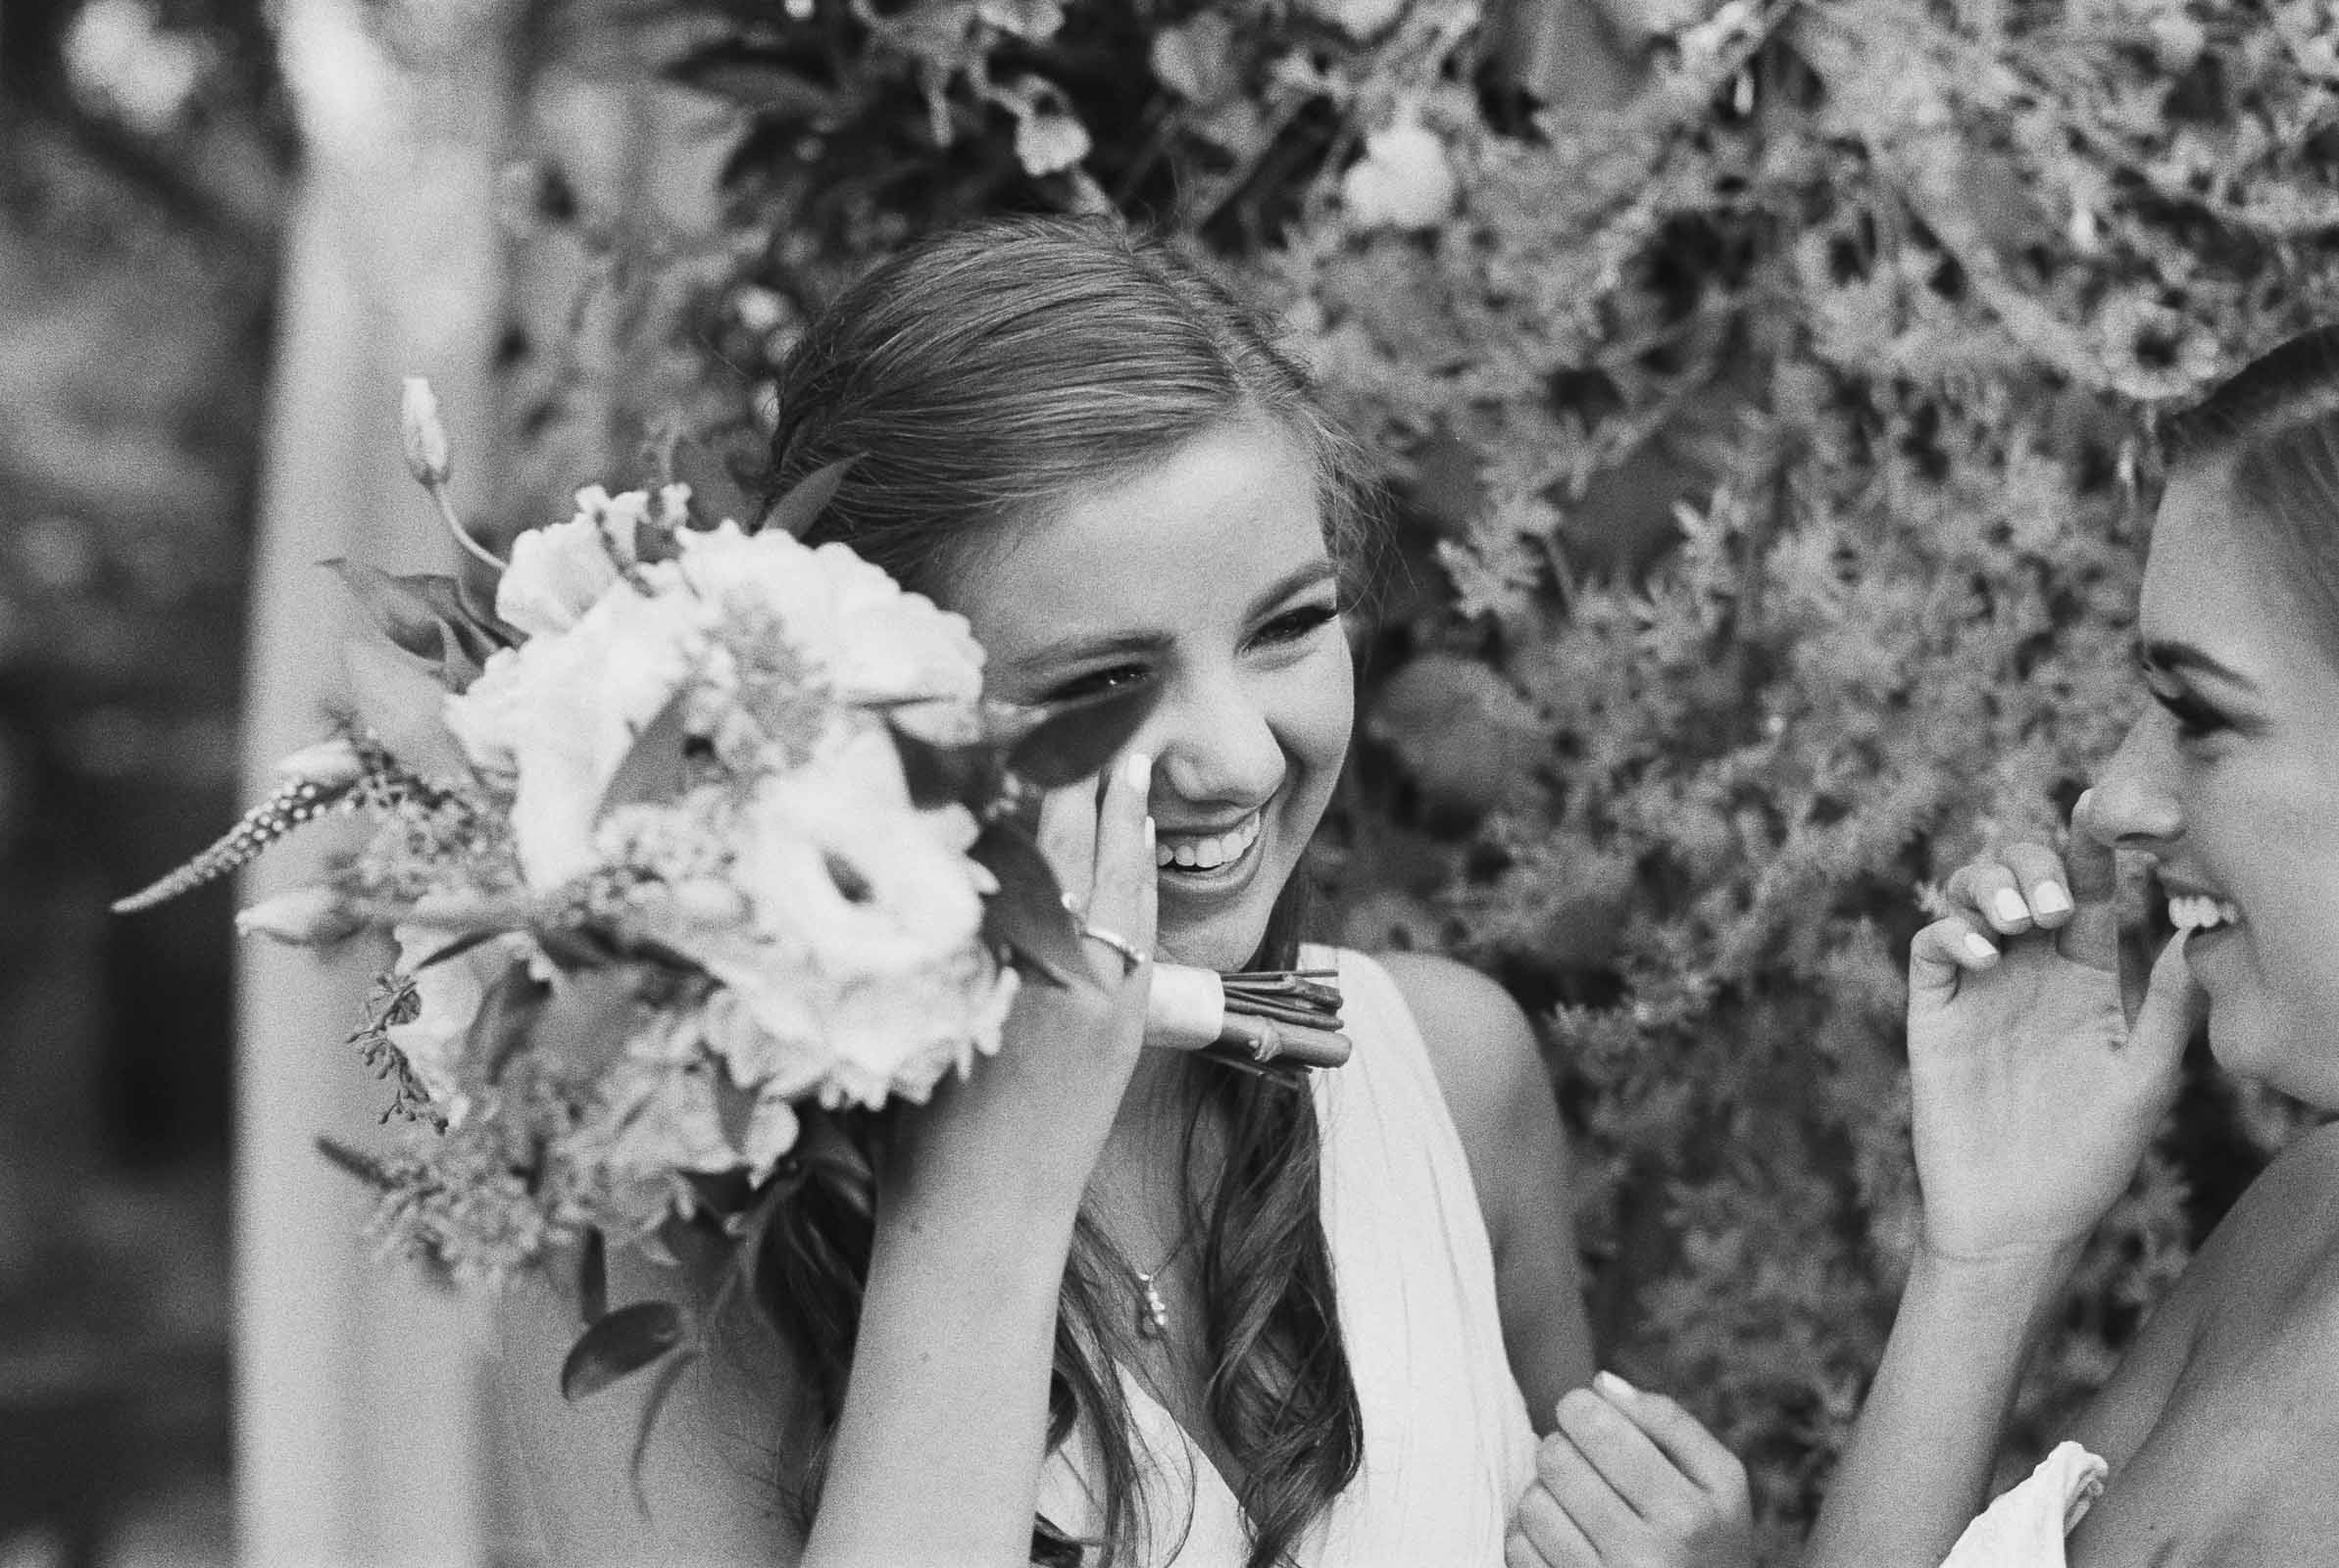 Emotional Moment between sisters captured by top Seattle Wedding Photographer Anna Peters